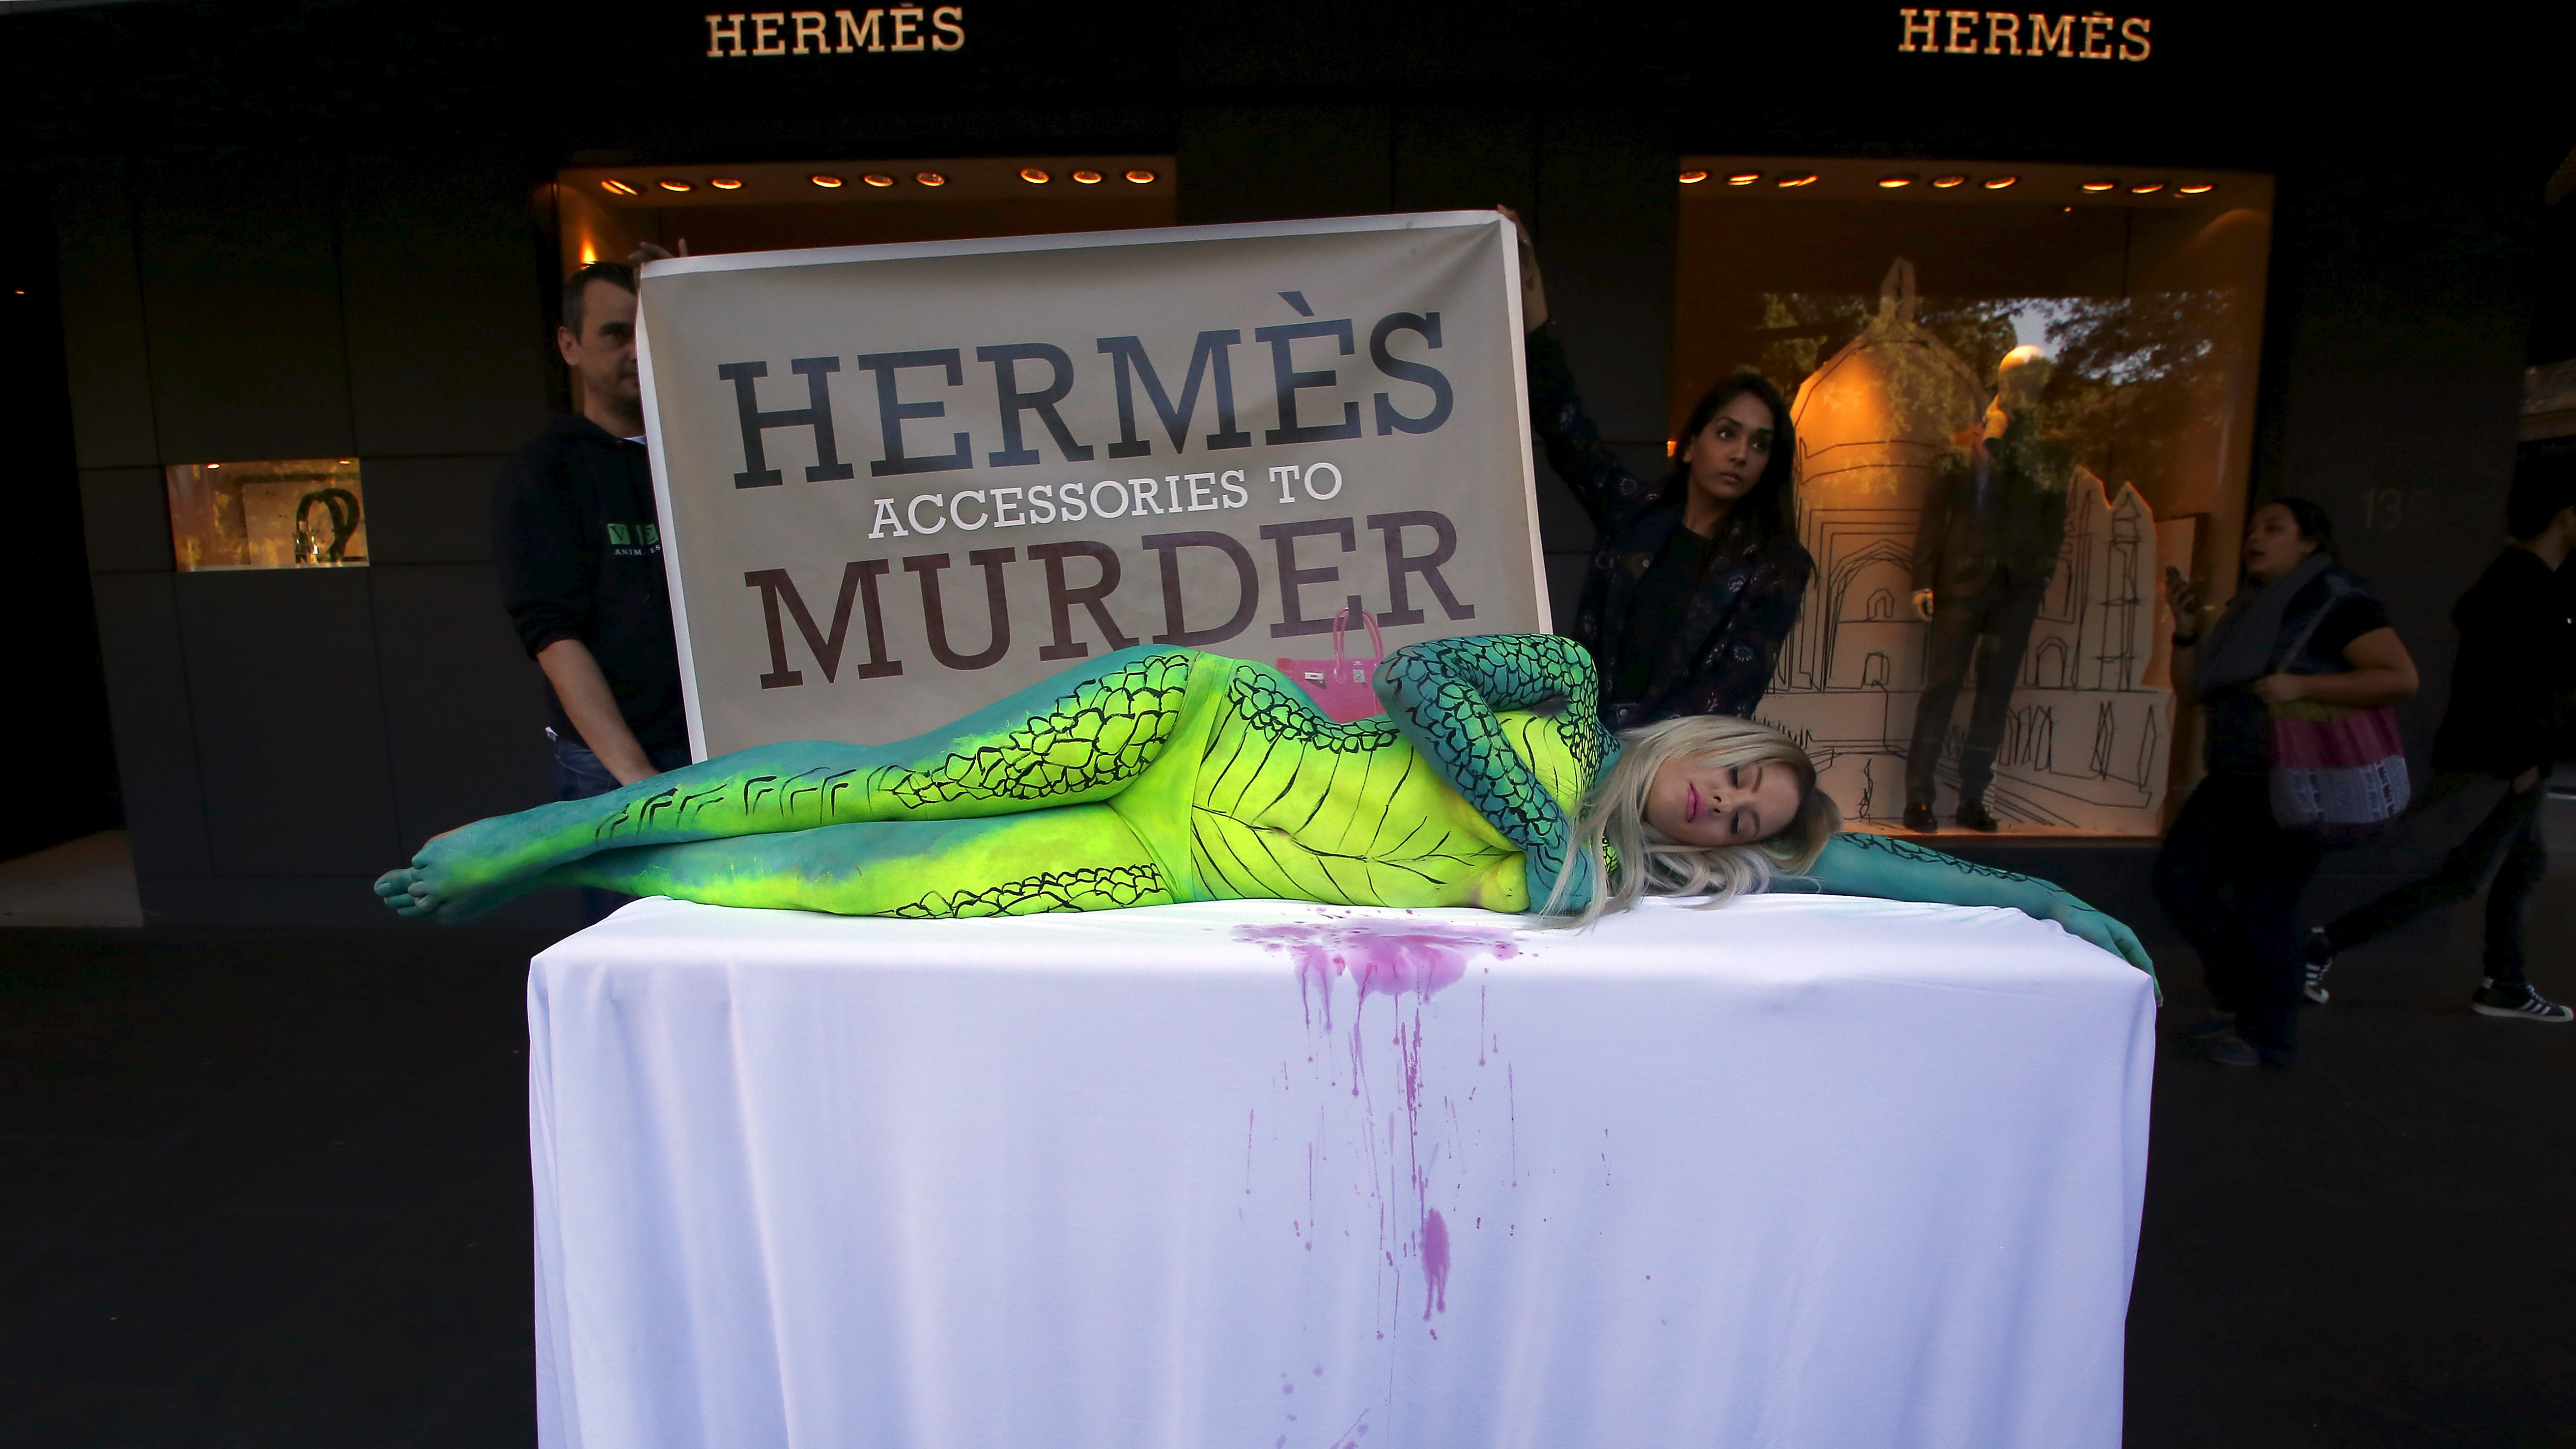 Australian model Rochelle Relf, painted as a crocodile, lies on a table during a protest against the use of crocodile skins, outside luxury product store Hermes in central Sydney, Australia, August 11, 2015. Animal rights organisation People for the Ethical Treatment of Animals (PETA) held the protest claiming that Hermes uses crocodile skins for some of their products from suppliers that harm the reptiles. REUTERS/David Gray